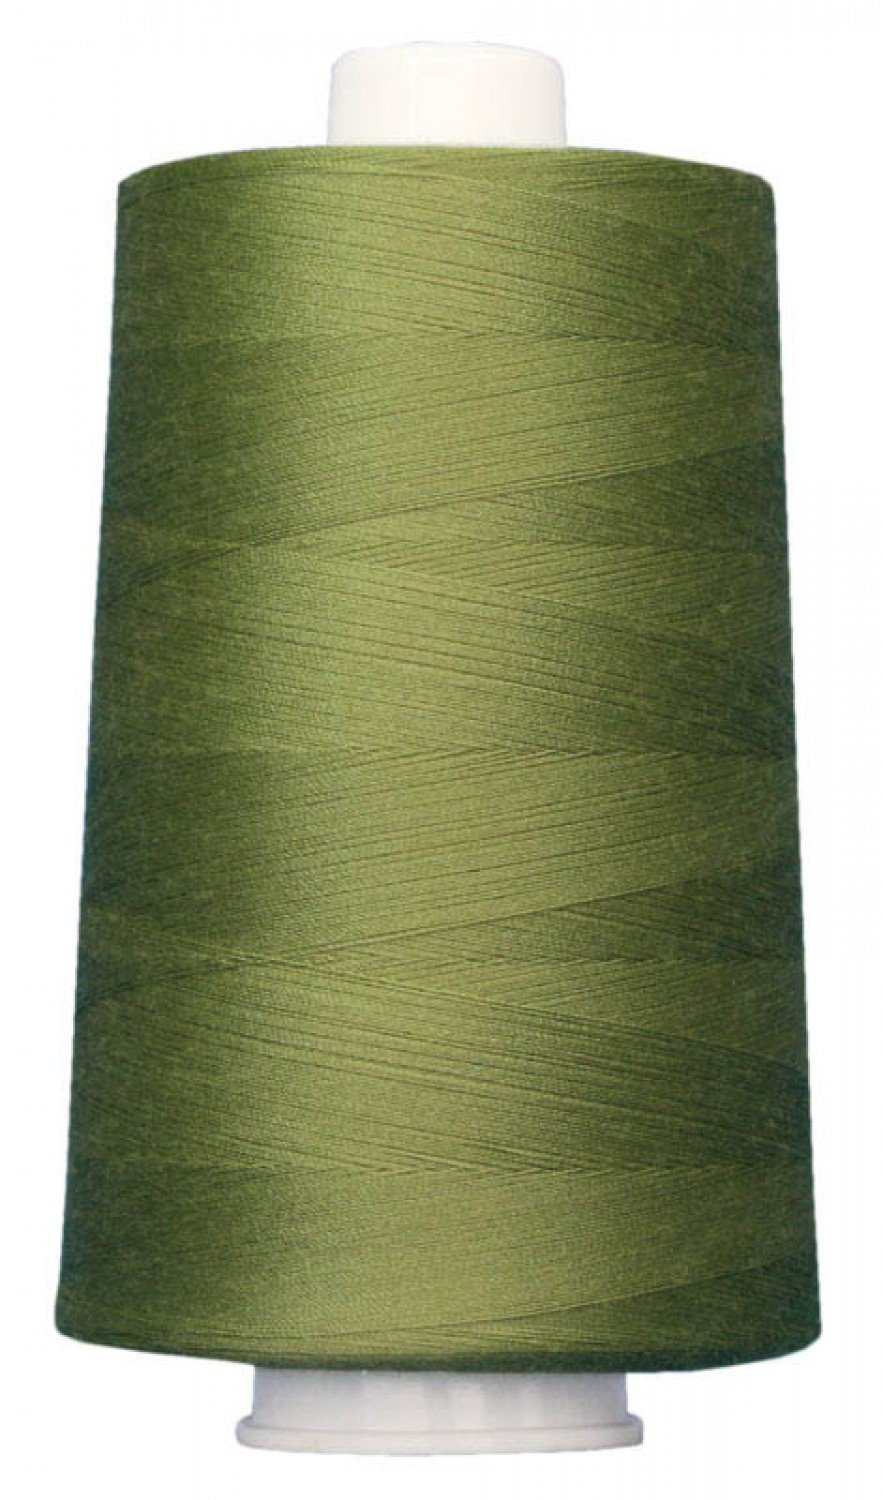 OMNI Polyester Thread 40 wt 6000 yds 3083 Pasture by Superior